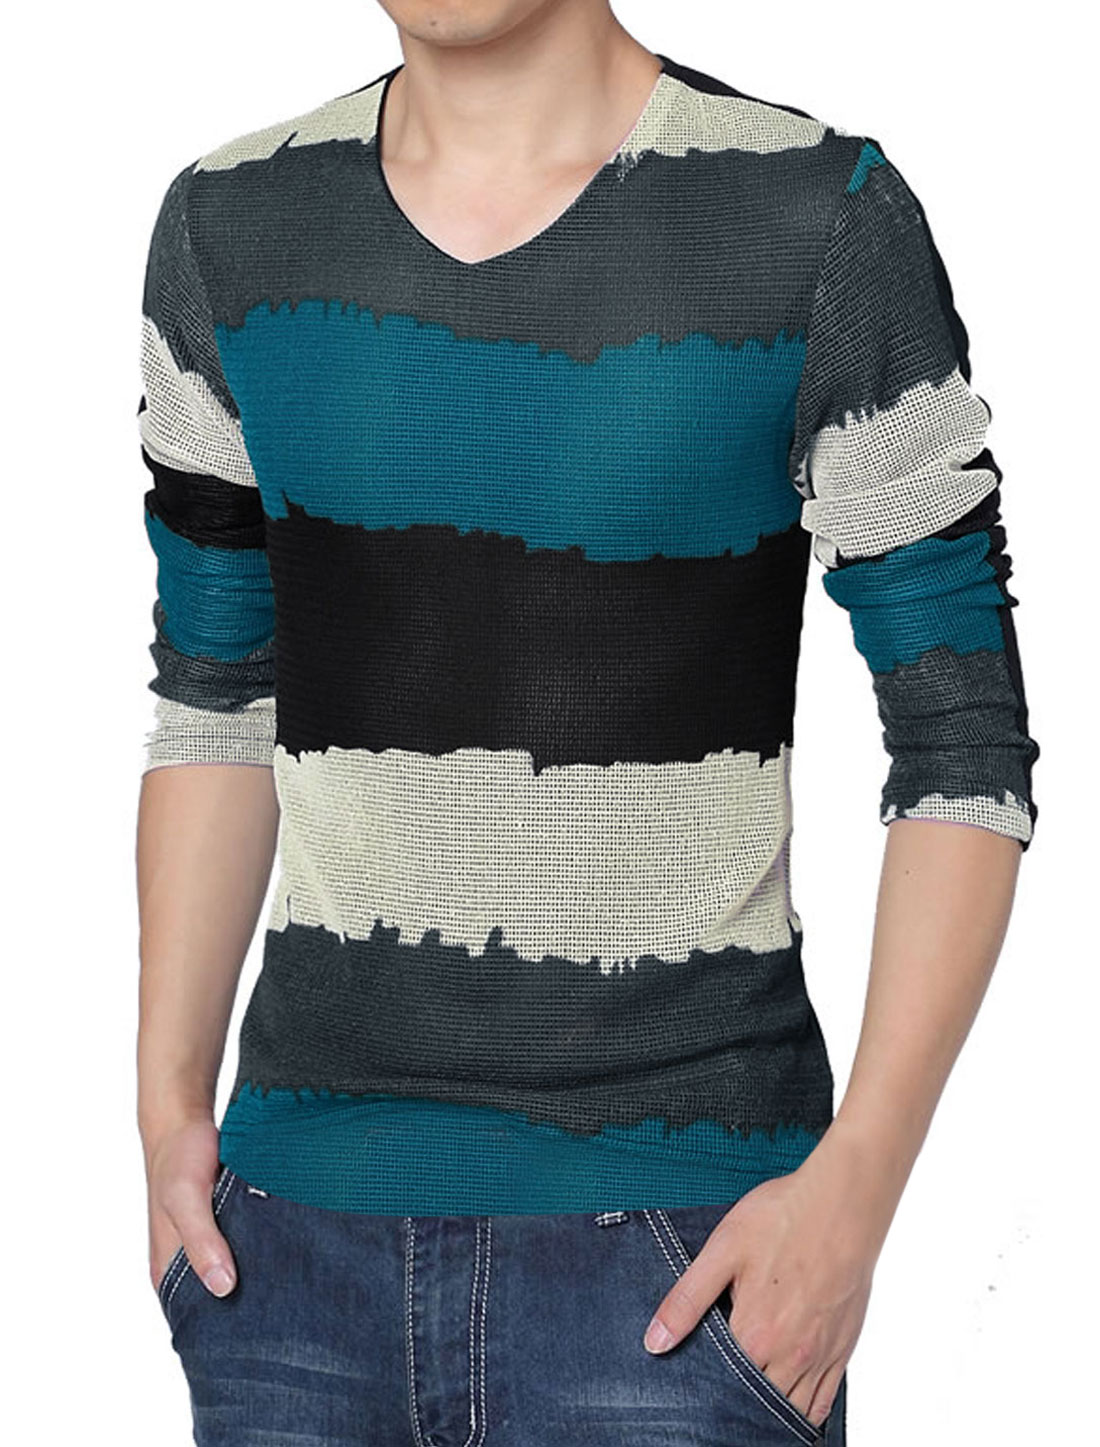 Men V Neck Splicing Stripes Lining Shirt Blue Black L